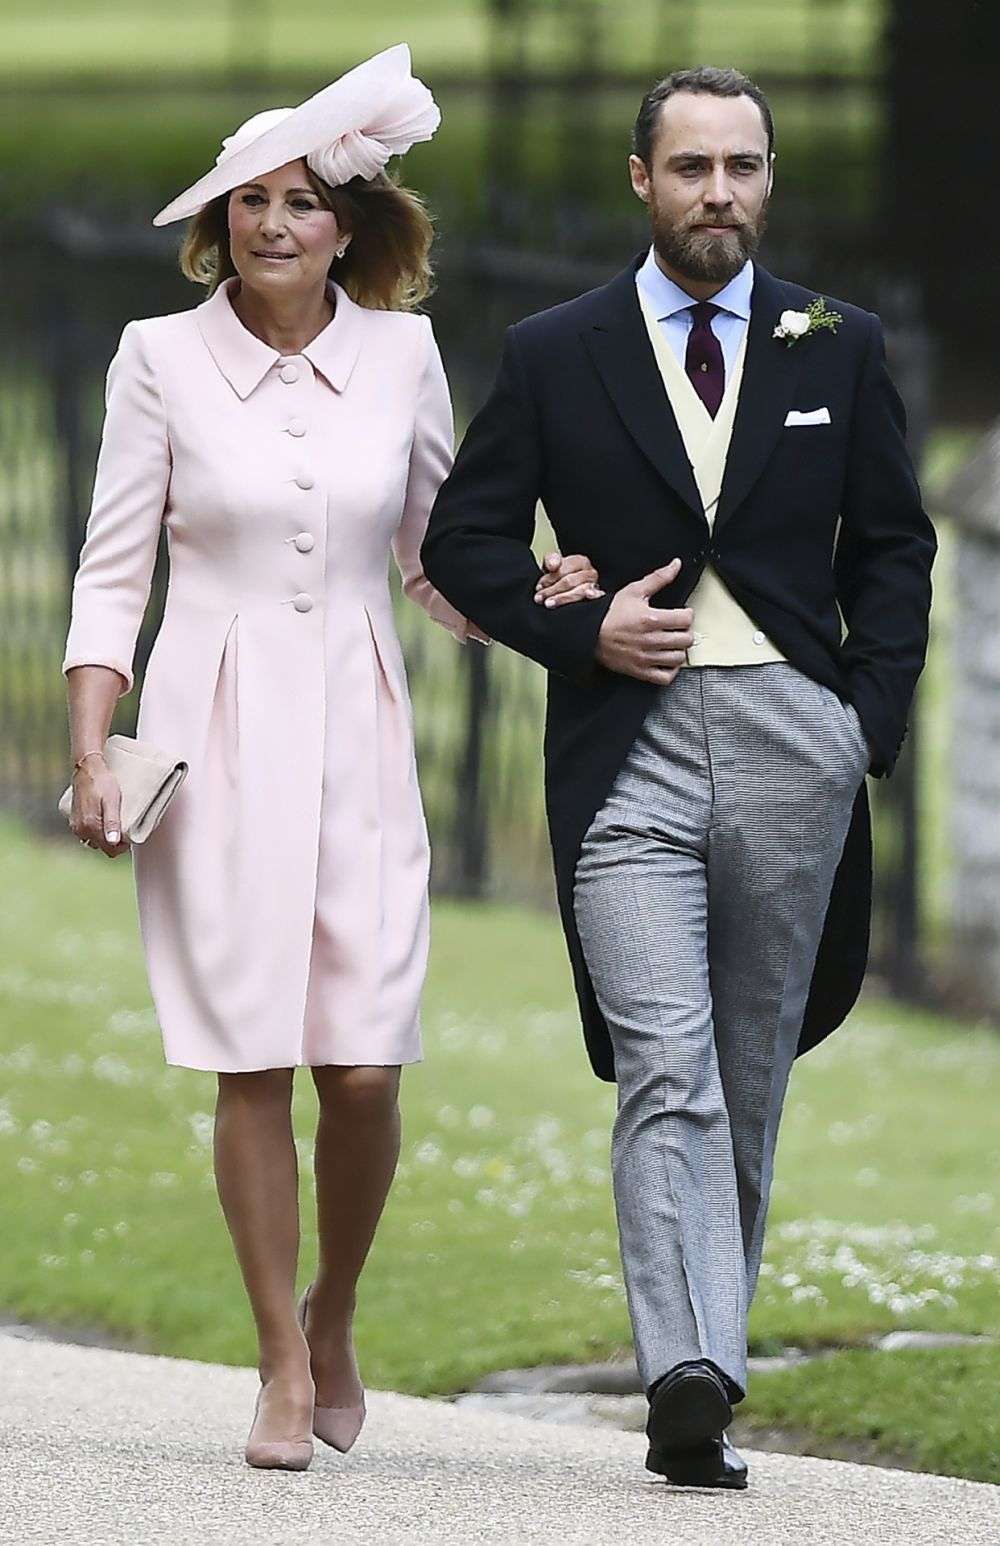 La madre y el hermano de Pippa Middleton, Carole y James Middleton.